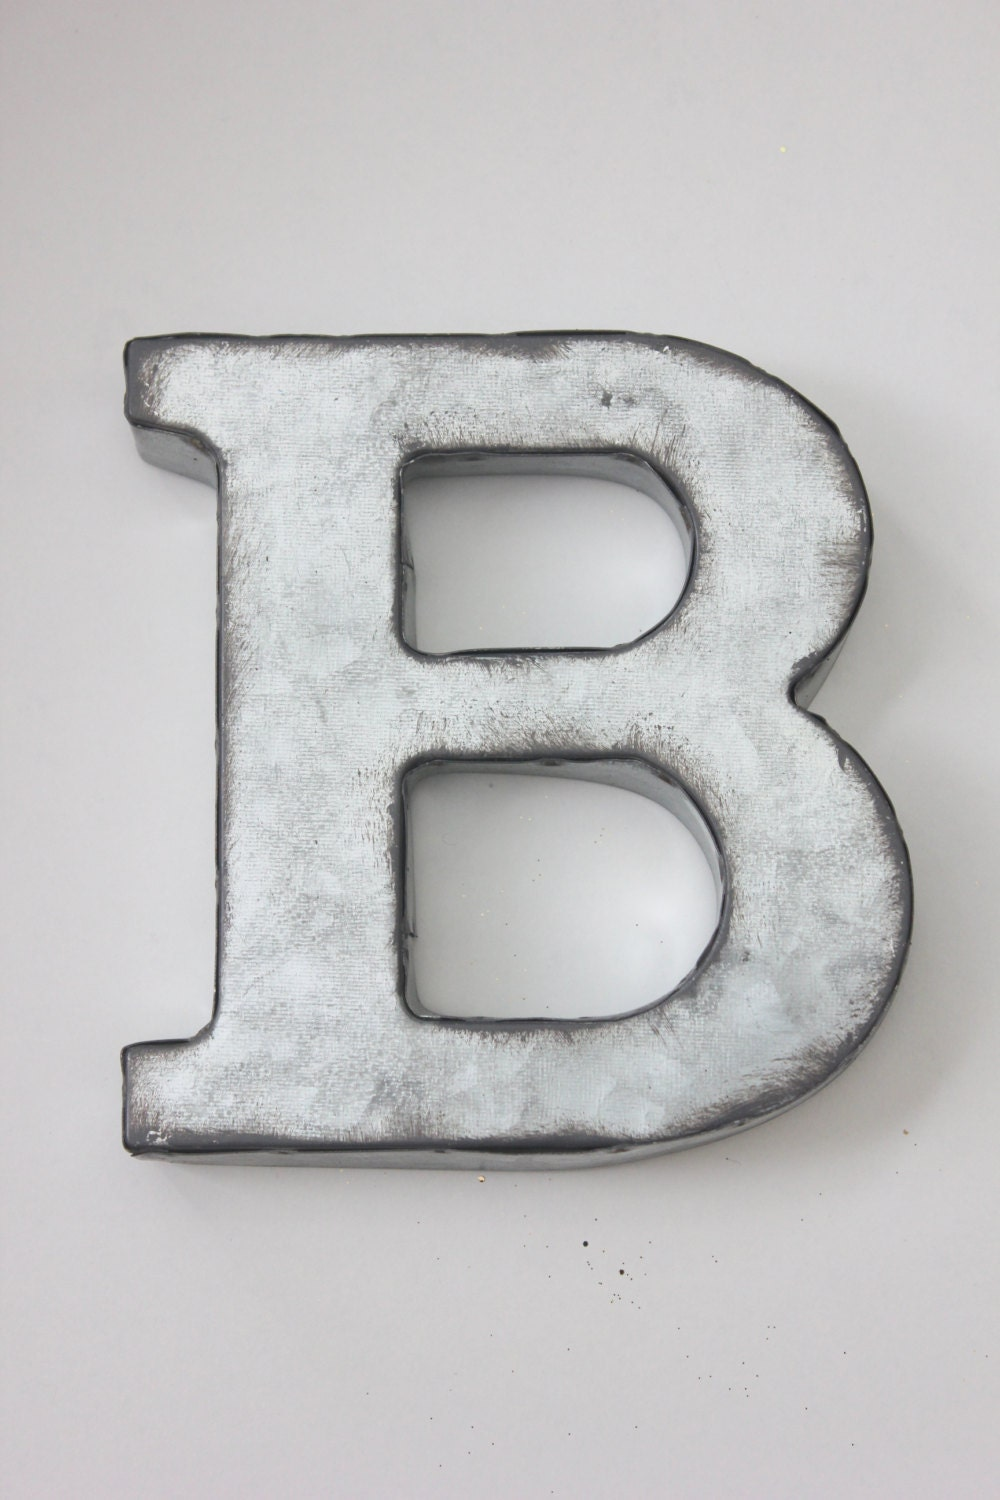 Small Decorative Metal Letters 4 Small Metal Letters Zinc Steel Initial Home Room Decor Diy